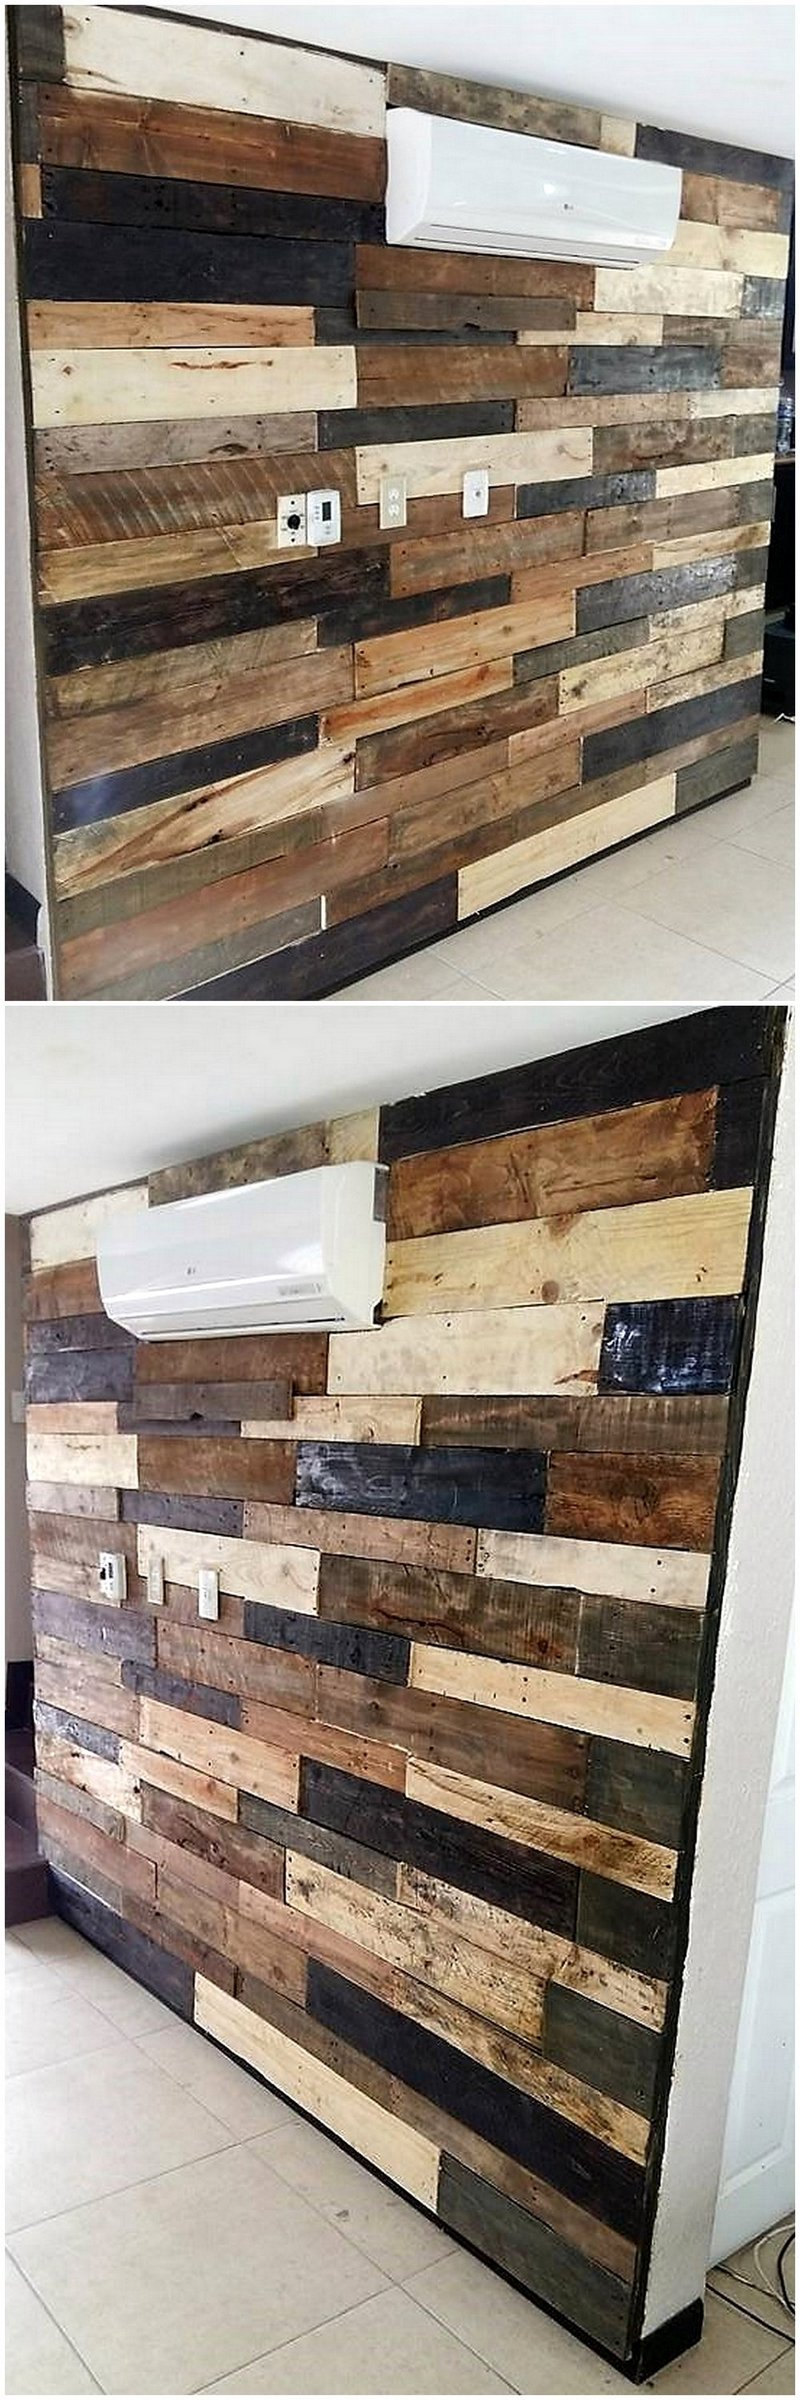 pallets wall works